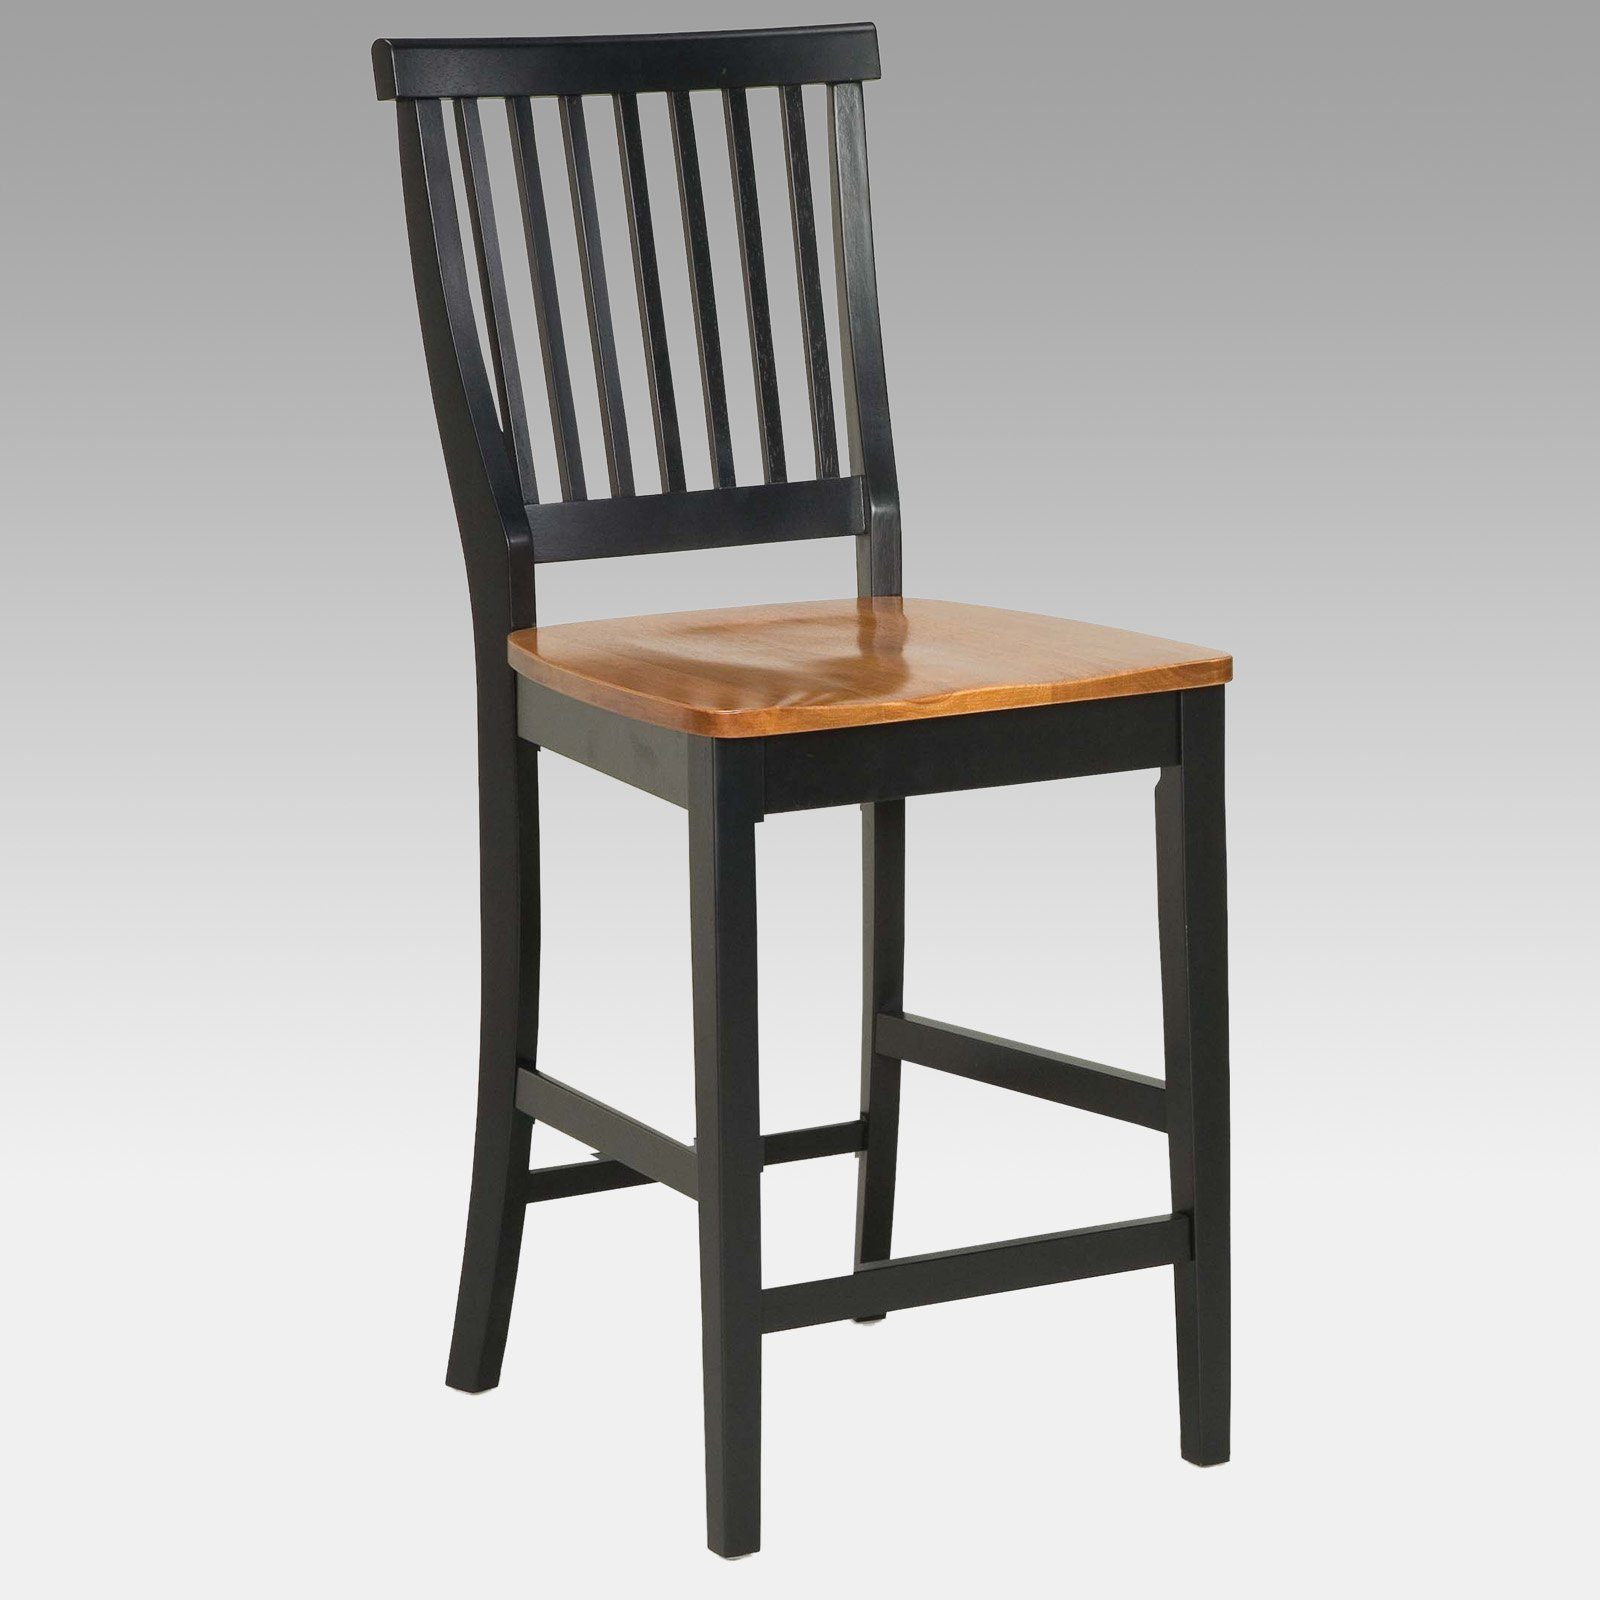 Home styles wood counter stool 24 black and cottage oak walmart com